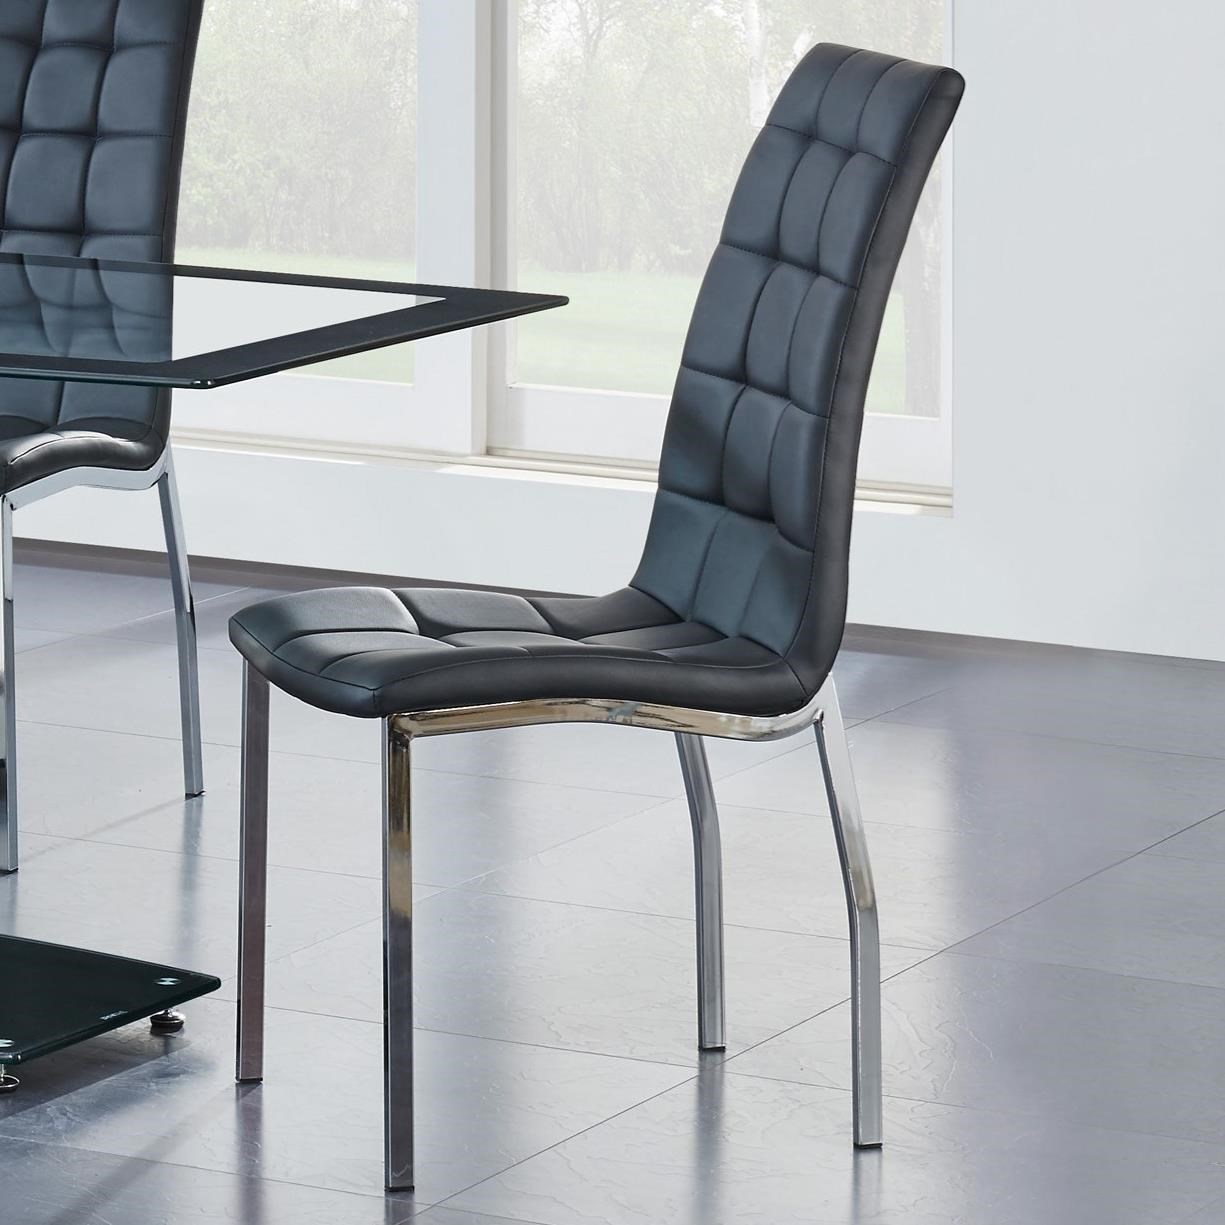 716 Dining Chair by Global Furniture at Corner Furniture